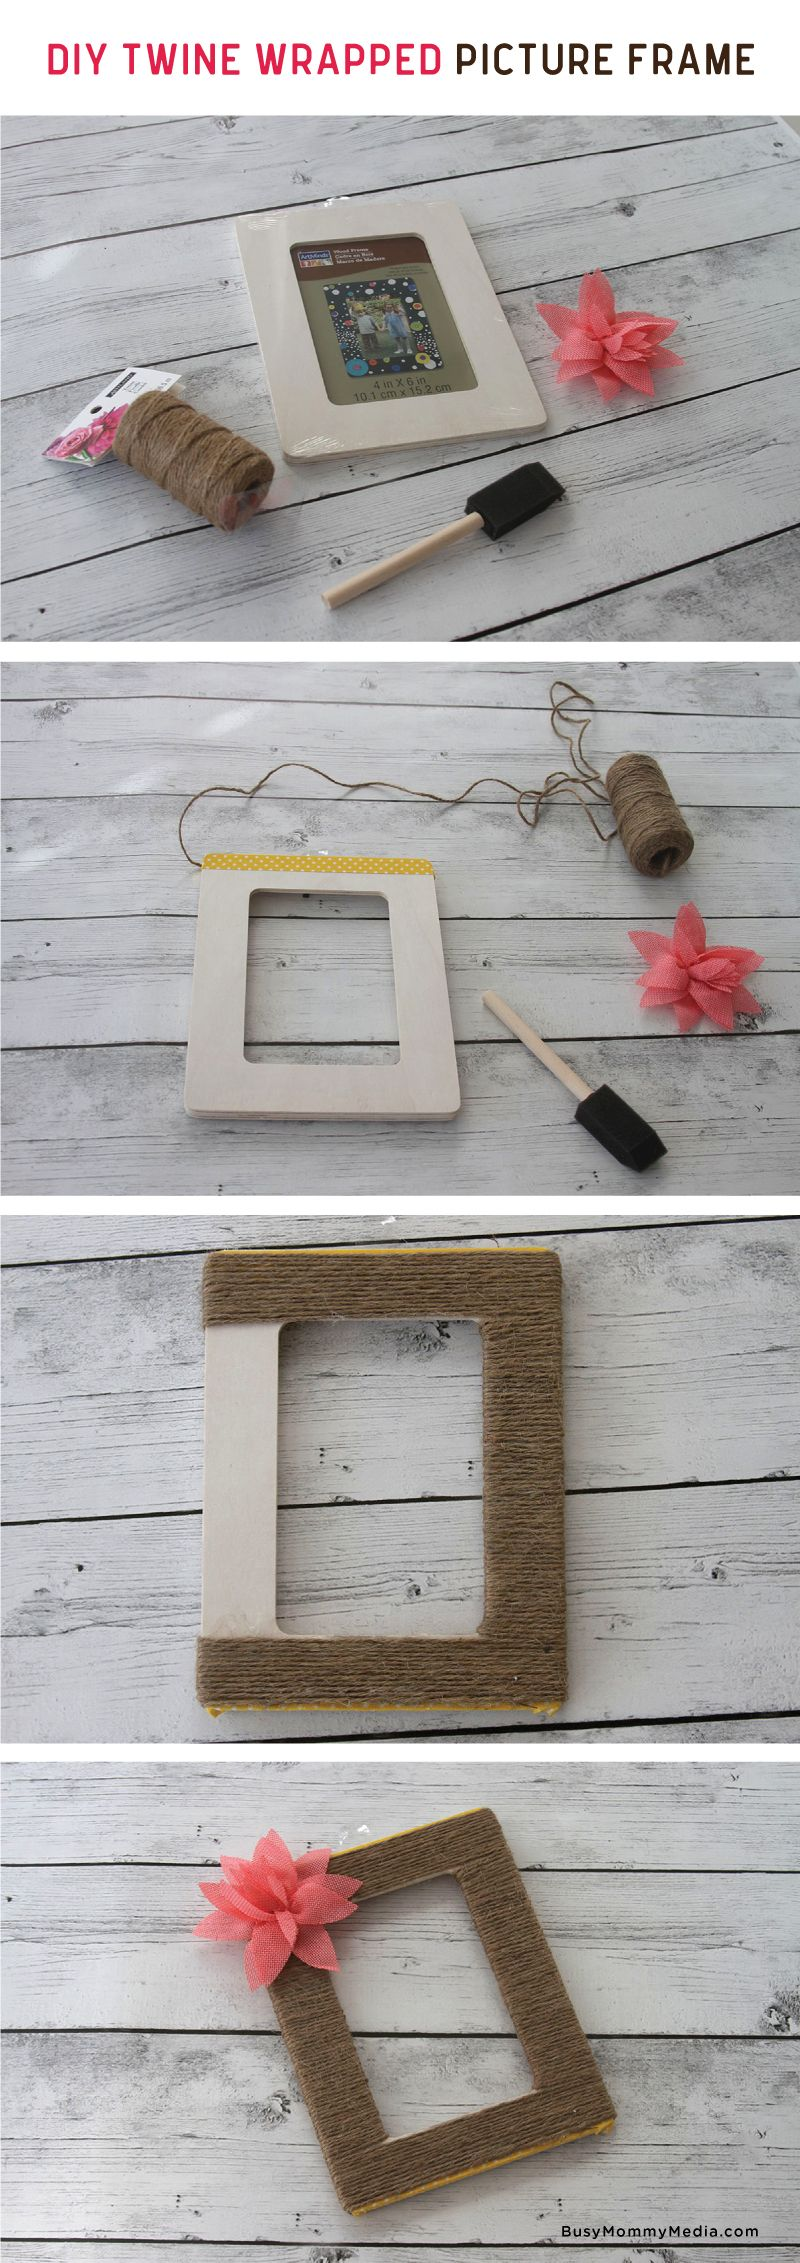 DIY Twine Wrapped Picture Frame | Twine, Wraps and Frames ideas